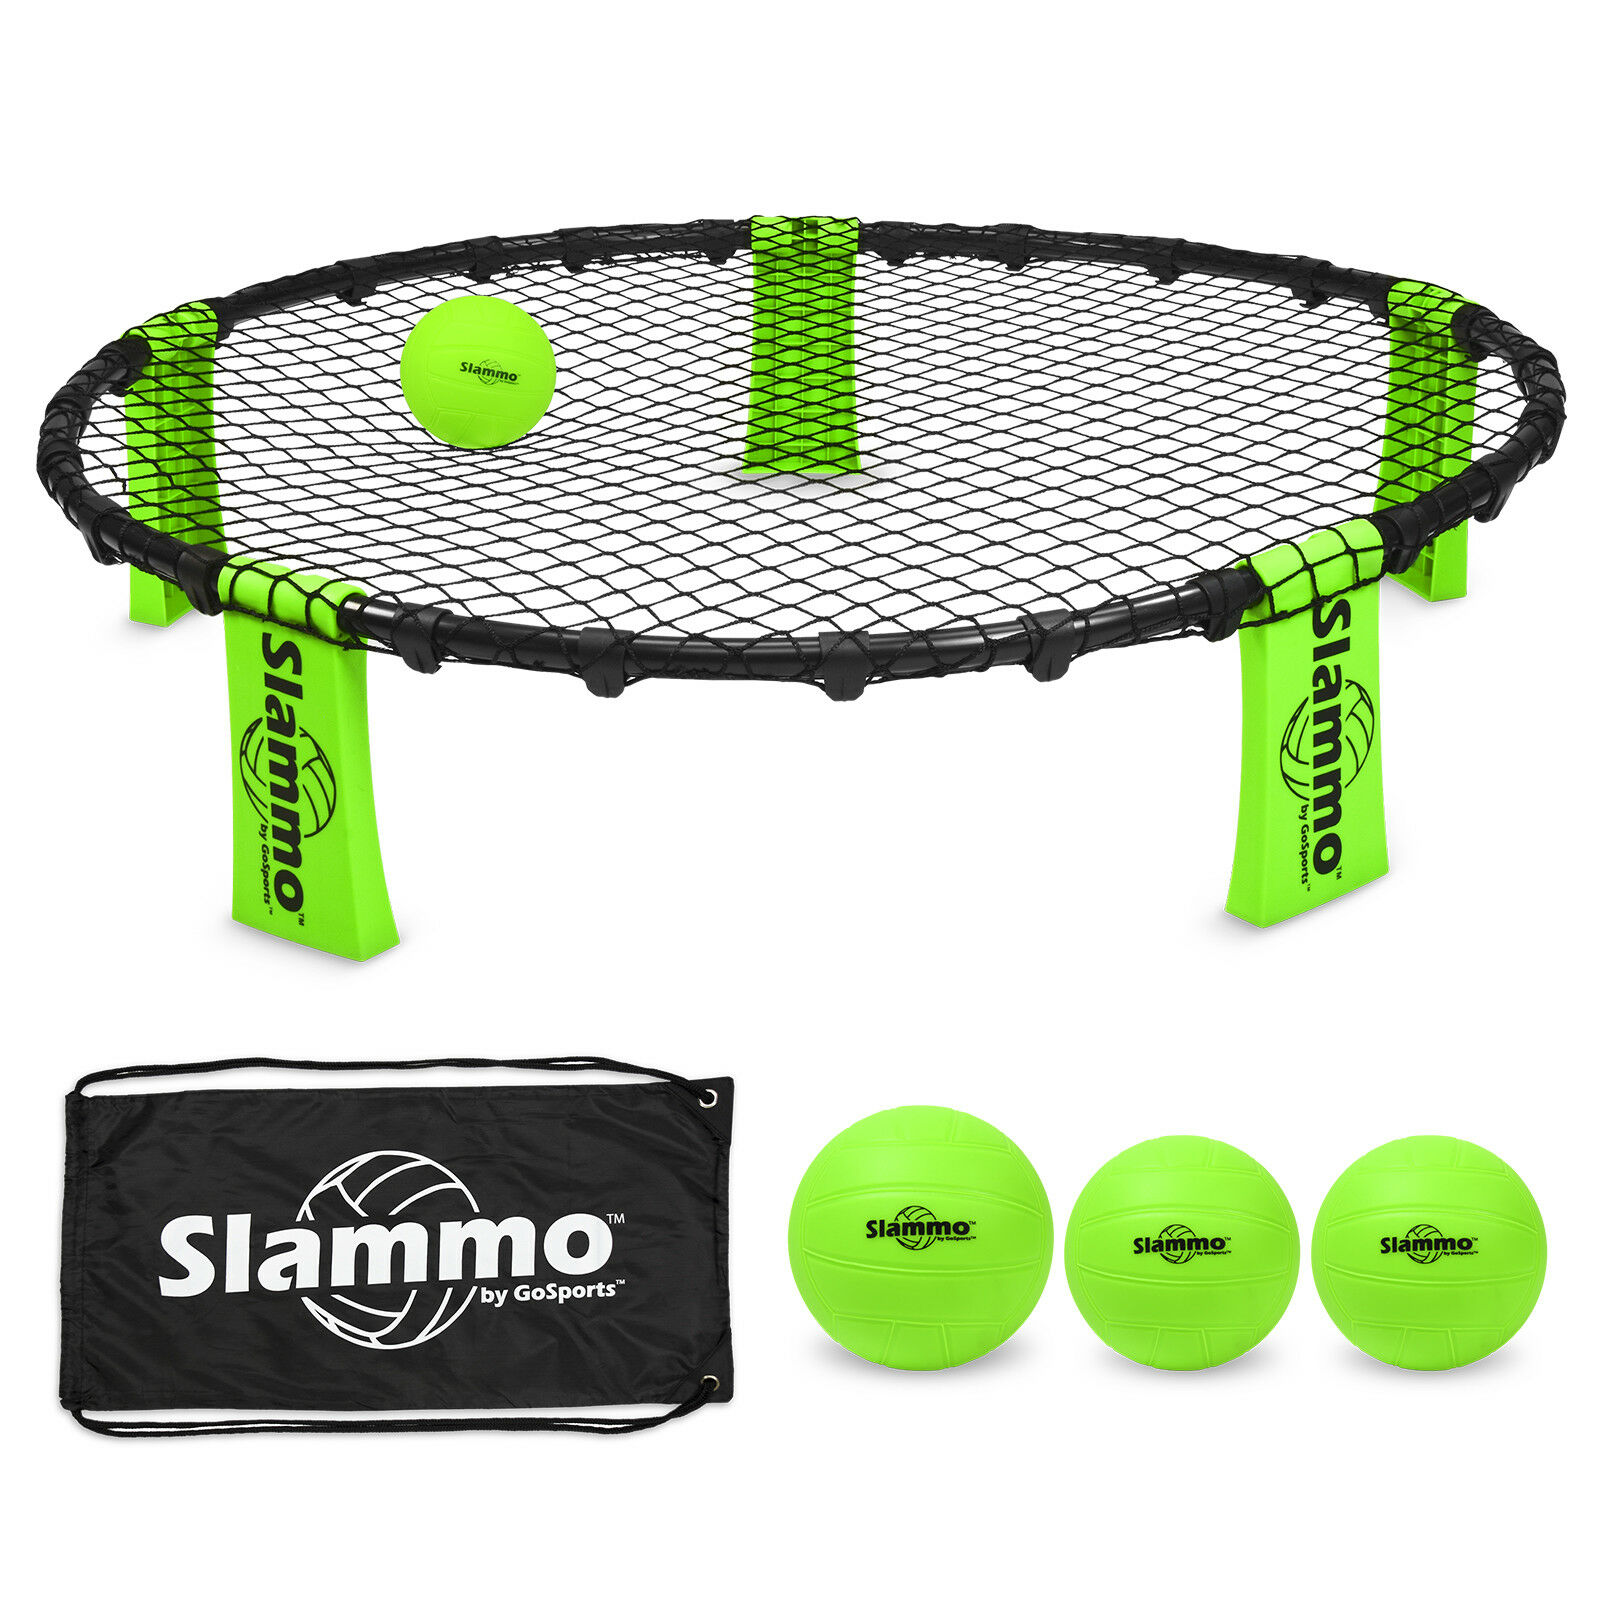 GoSports Slammo™ 2-on-2 4-Square meets Volleyball